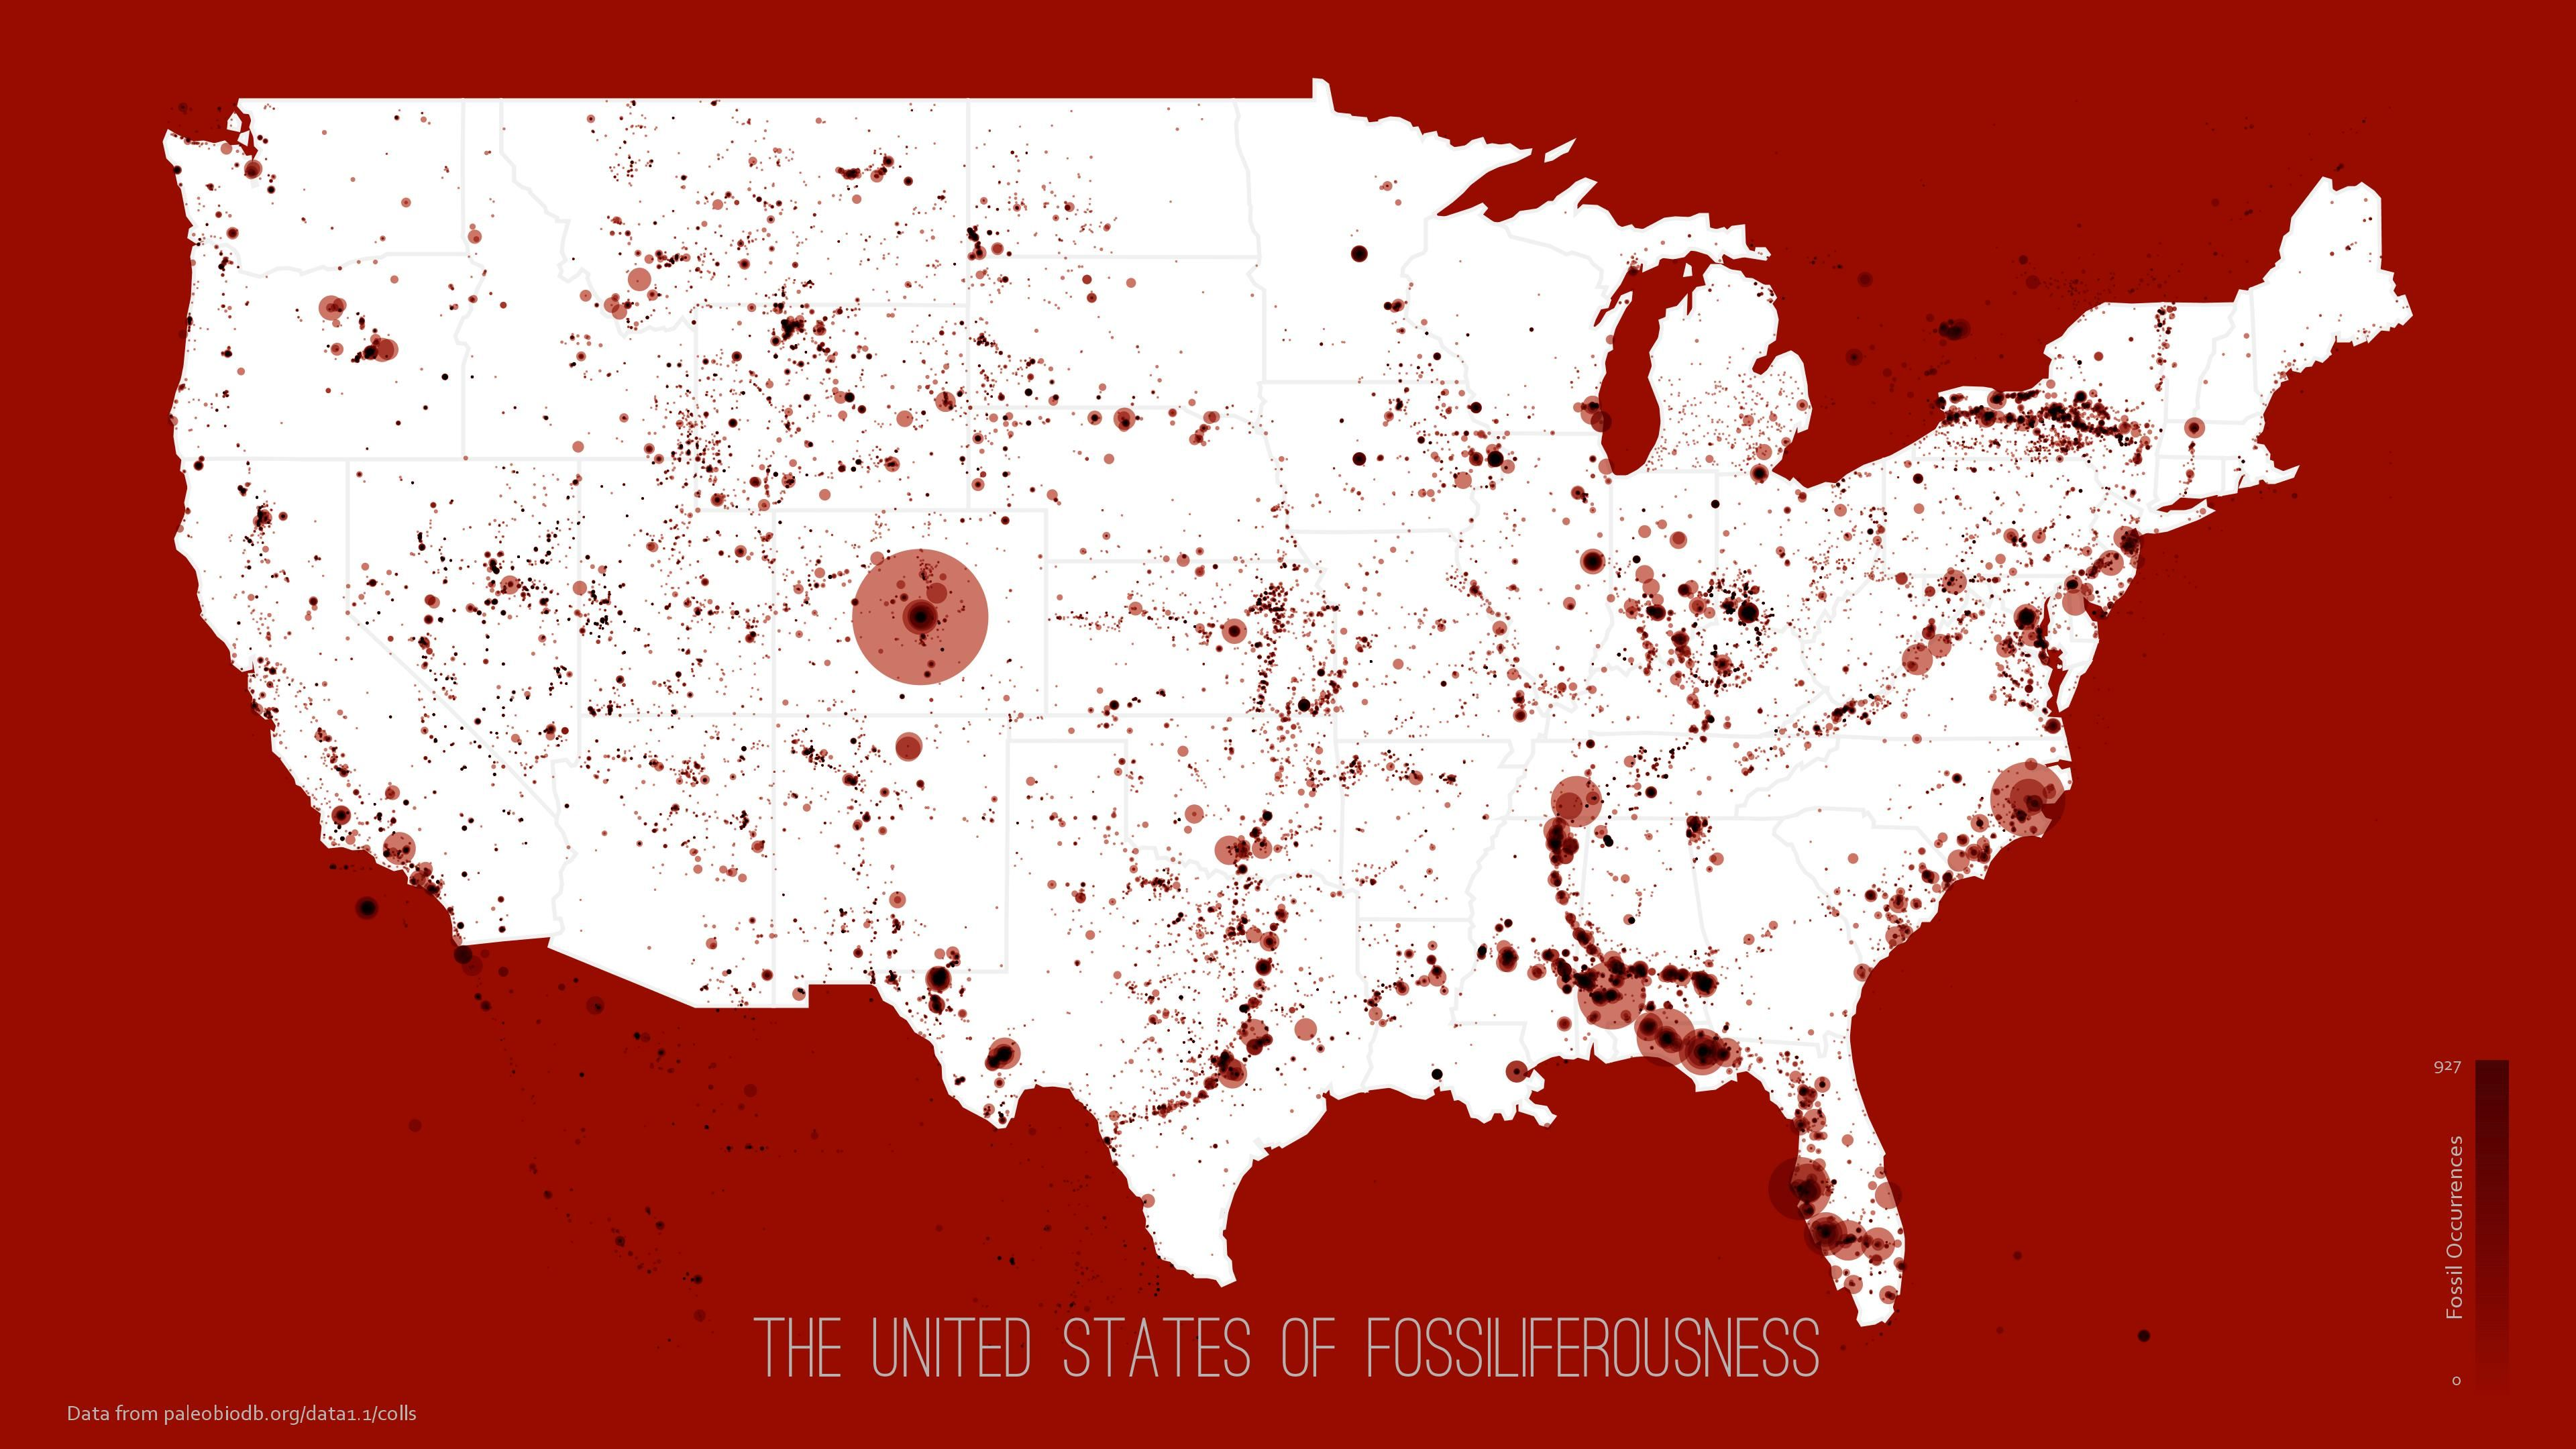 """""""United States of Fossiliferousness"""" - album on Imgur    related article, w/ more details & info: """"Mapping Everywhere Fossils Have Been Found in the U.S."""" http://www.citylab.com/design/2015/07/mapping-everywhere-fossils-have-been-found-in-the-us/398456/ #anthropology #paleontology"""